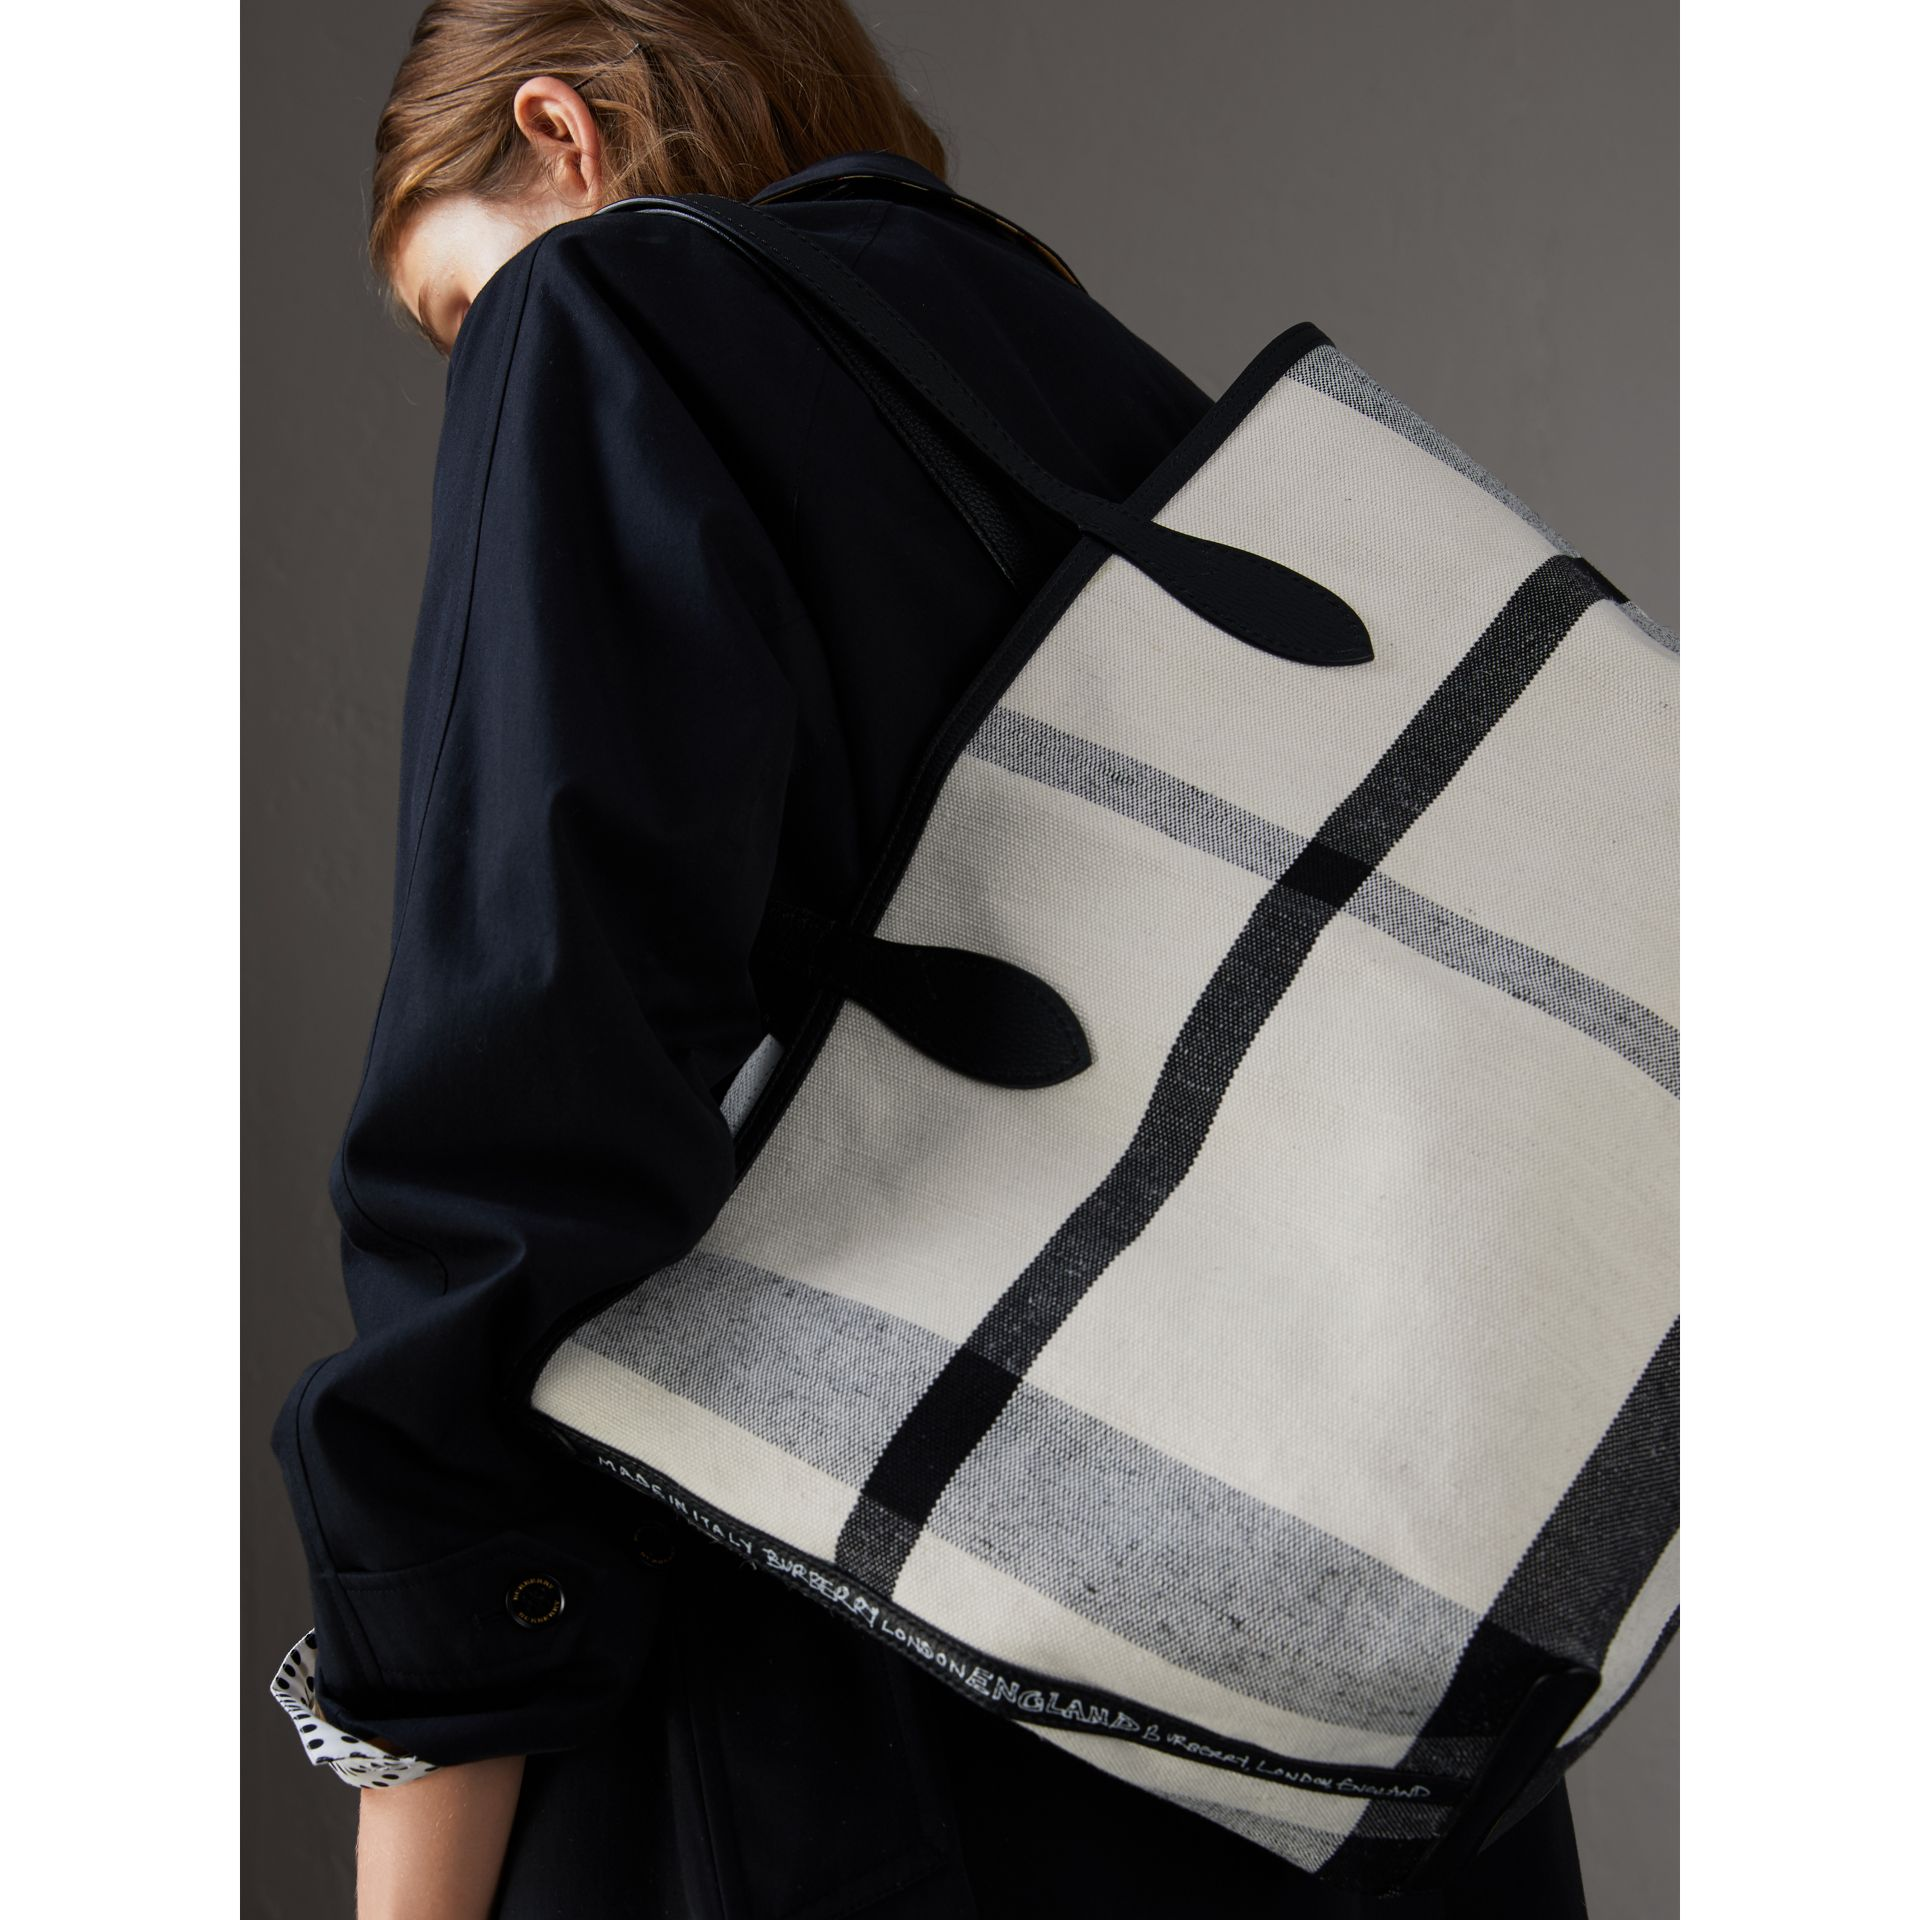 The Medium Doodle Tote in wendbarem Design (Weiss/schwarz) - Damen | Burberry - Galerie-Bild 2